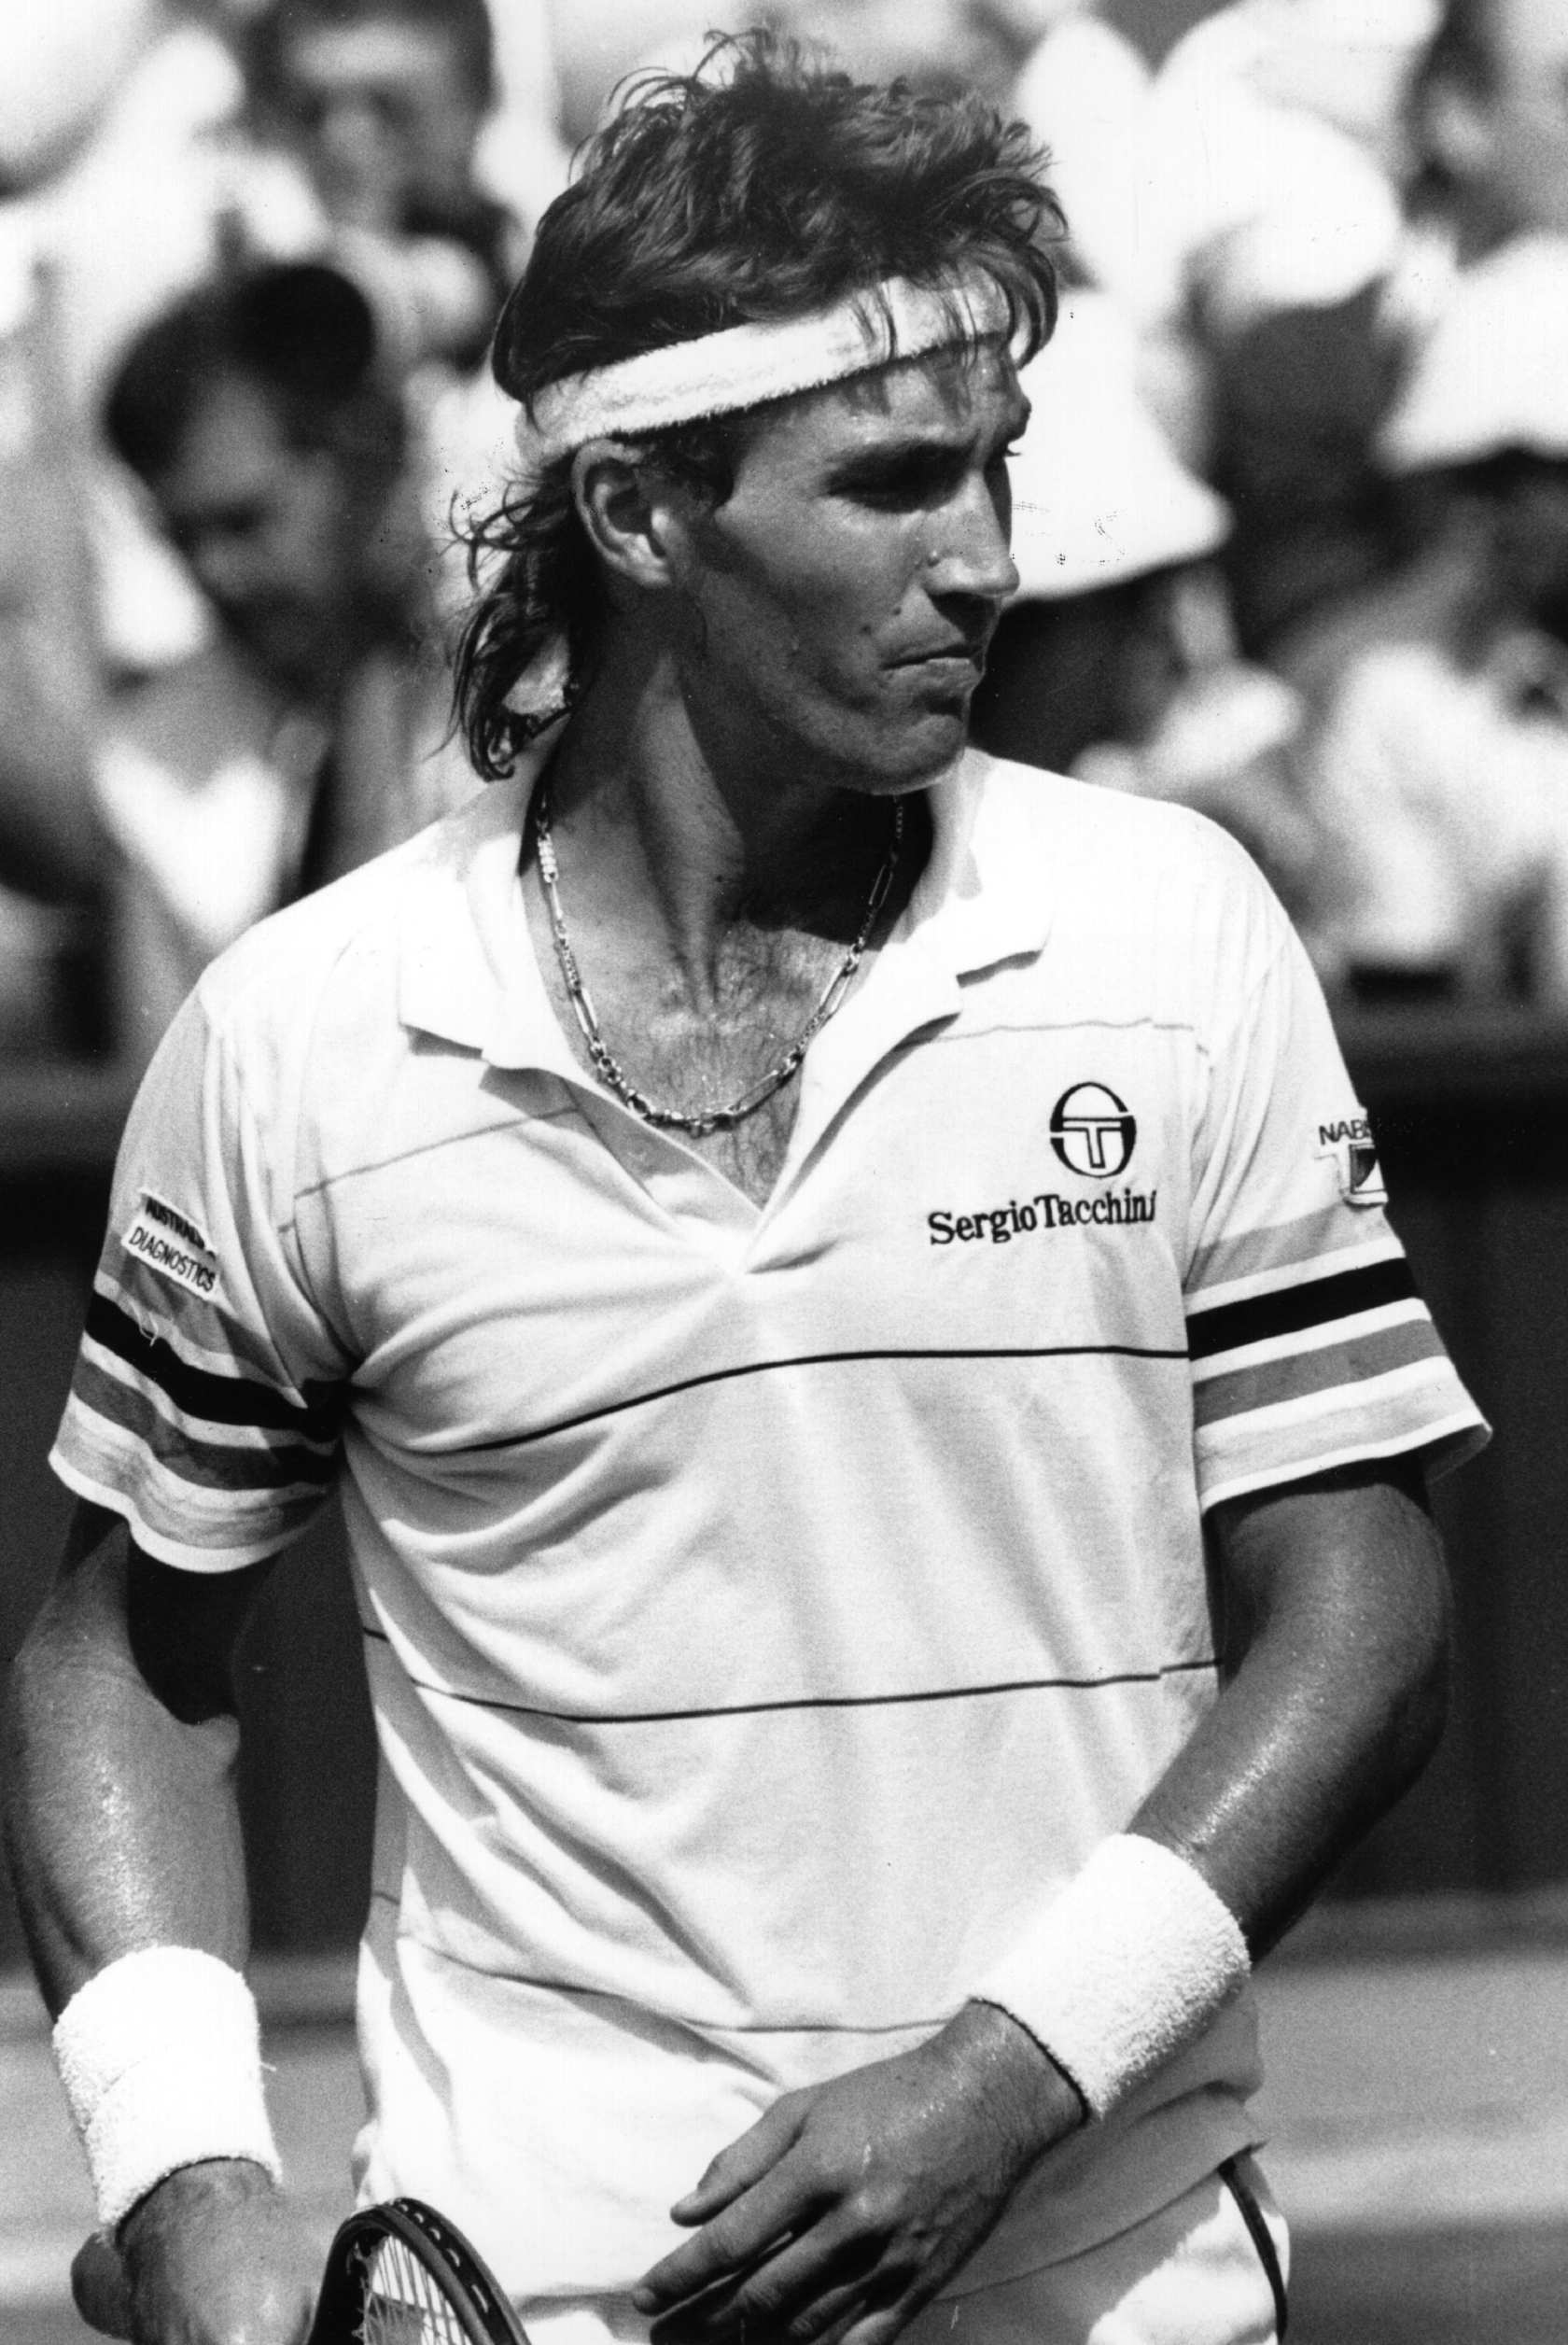 Pat Cash 1986 Tennis Hunks Throughout Time The Cut